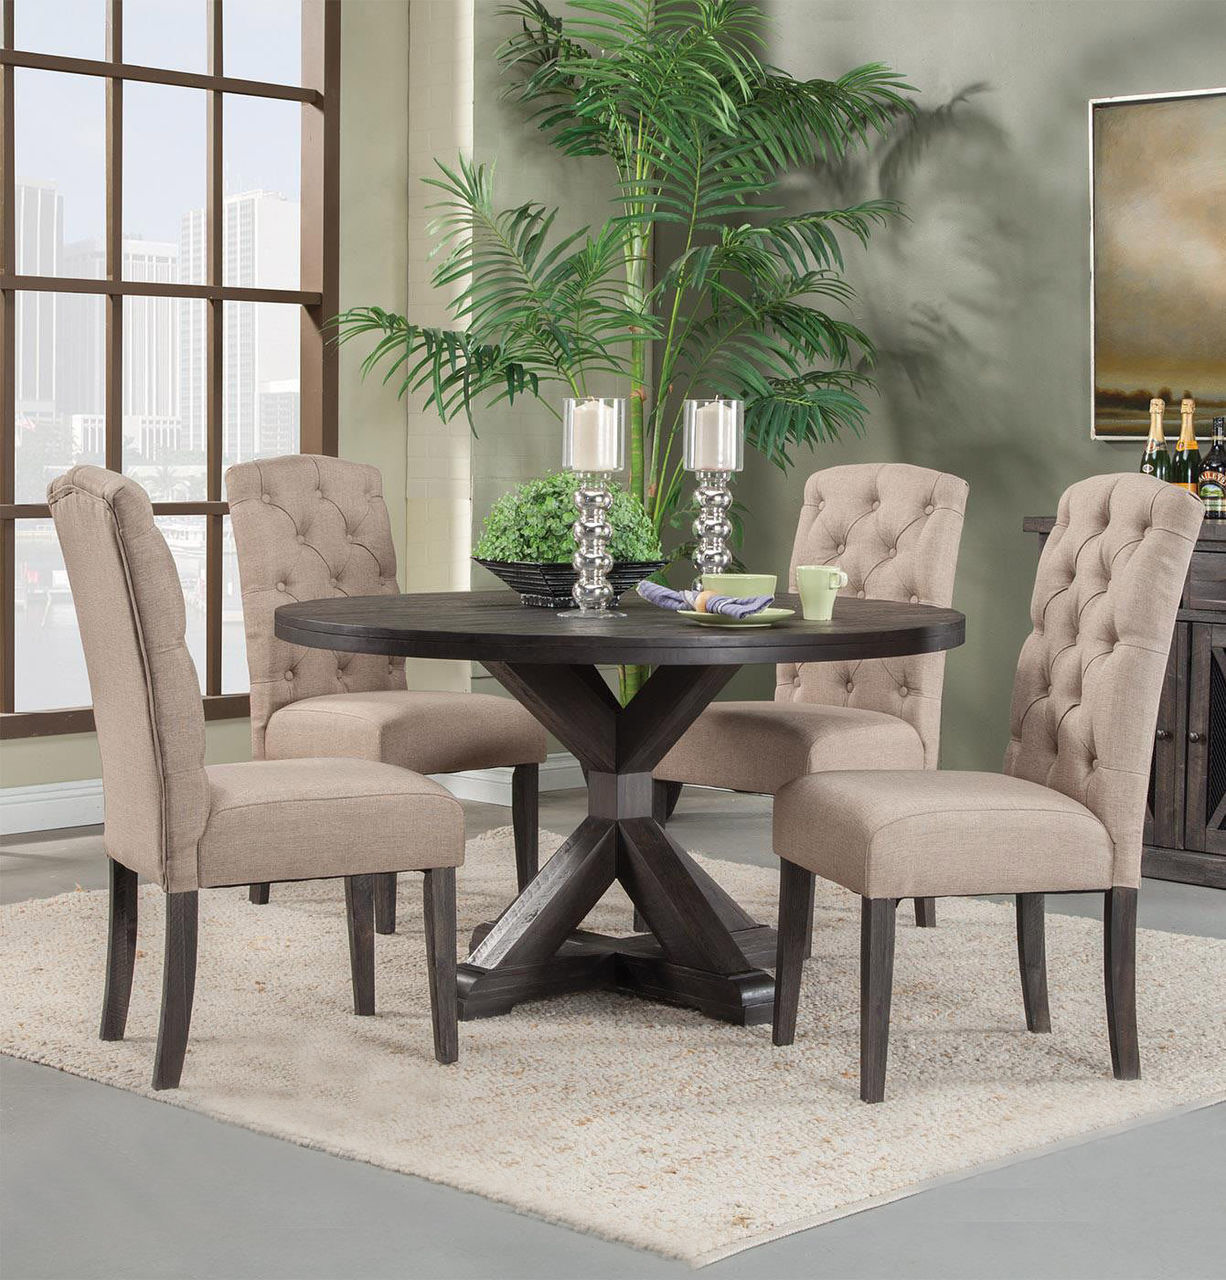 circle table and chair set glass pub chairs fall trend rustic dining sets www